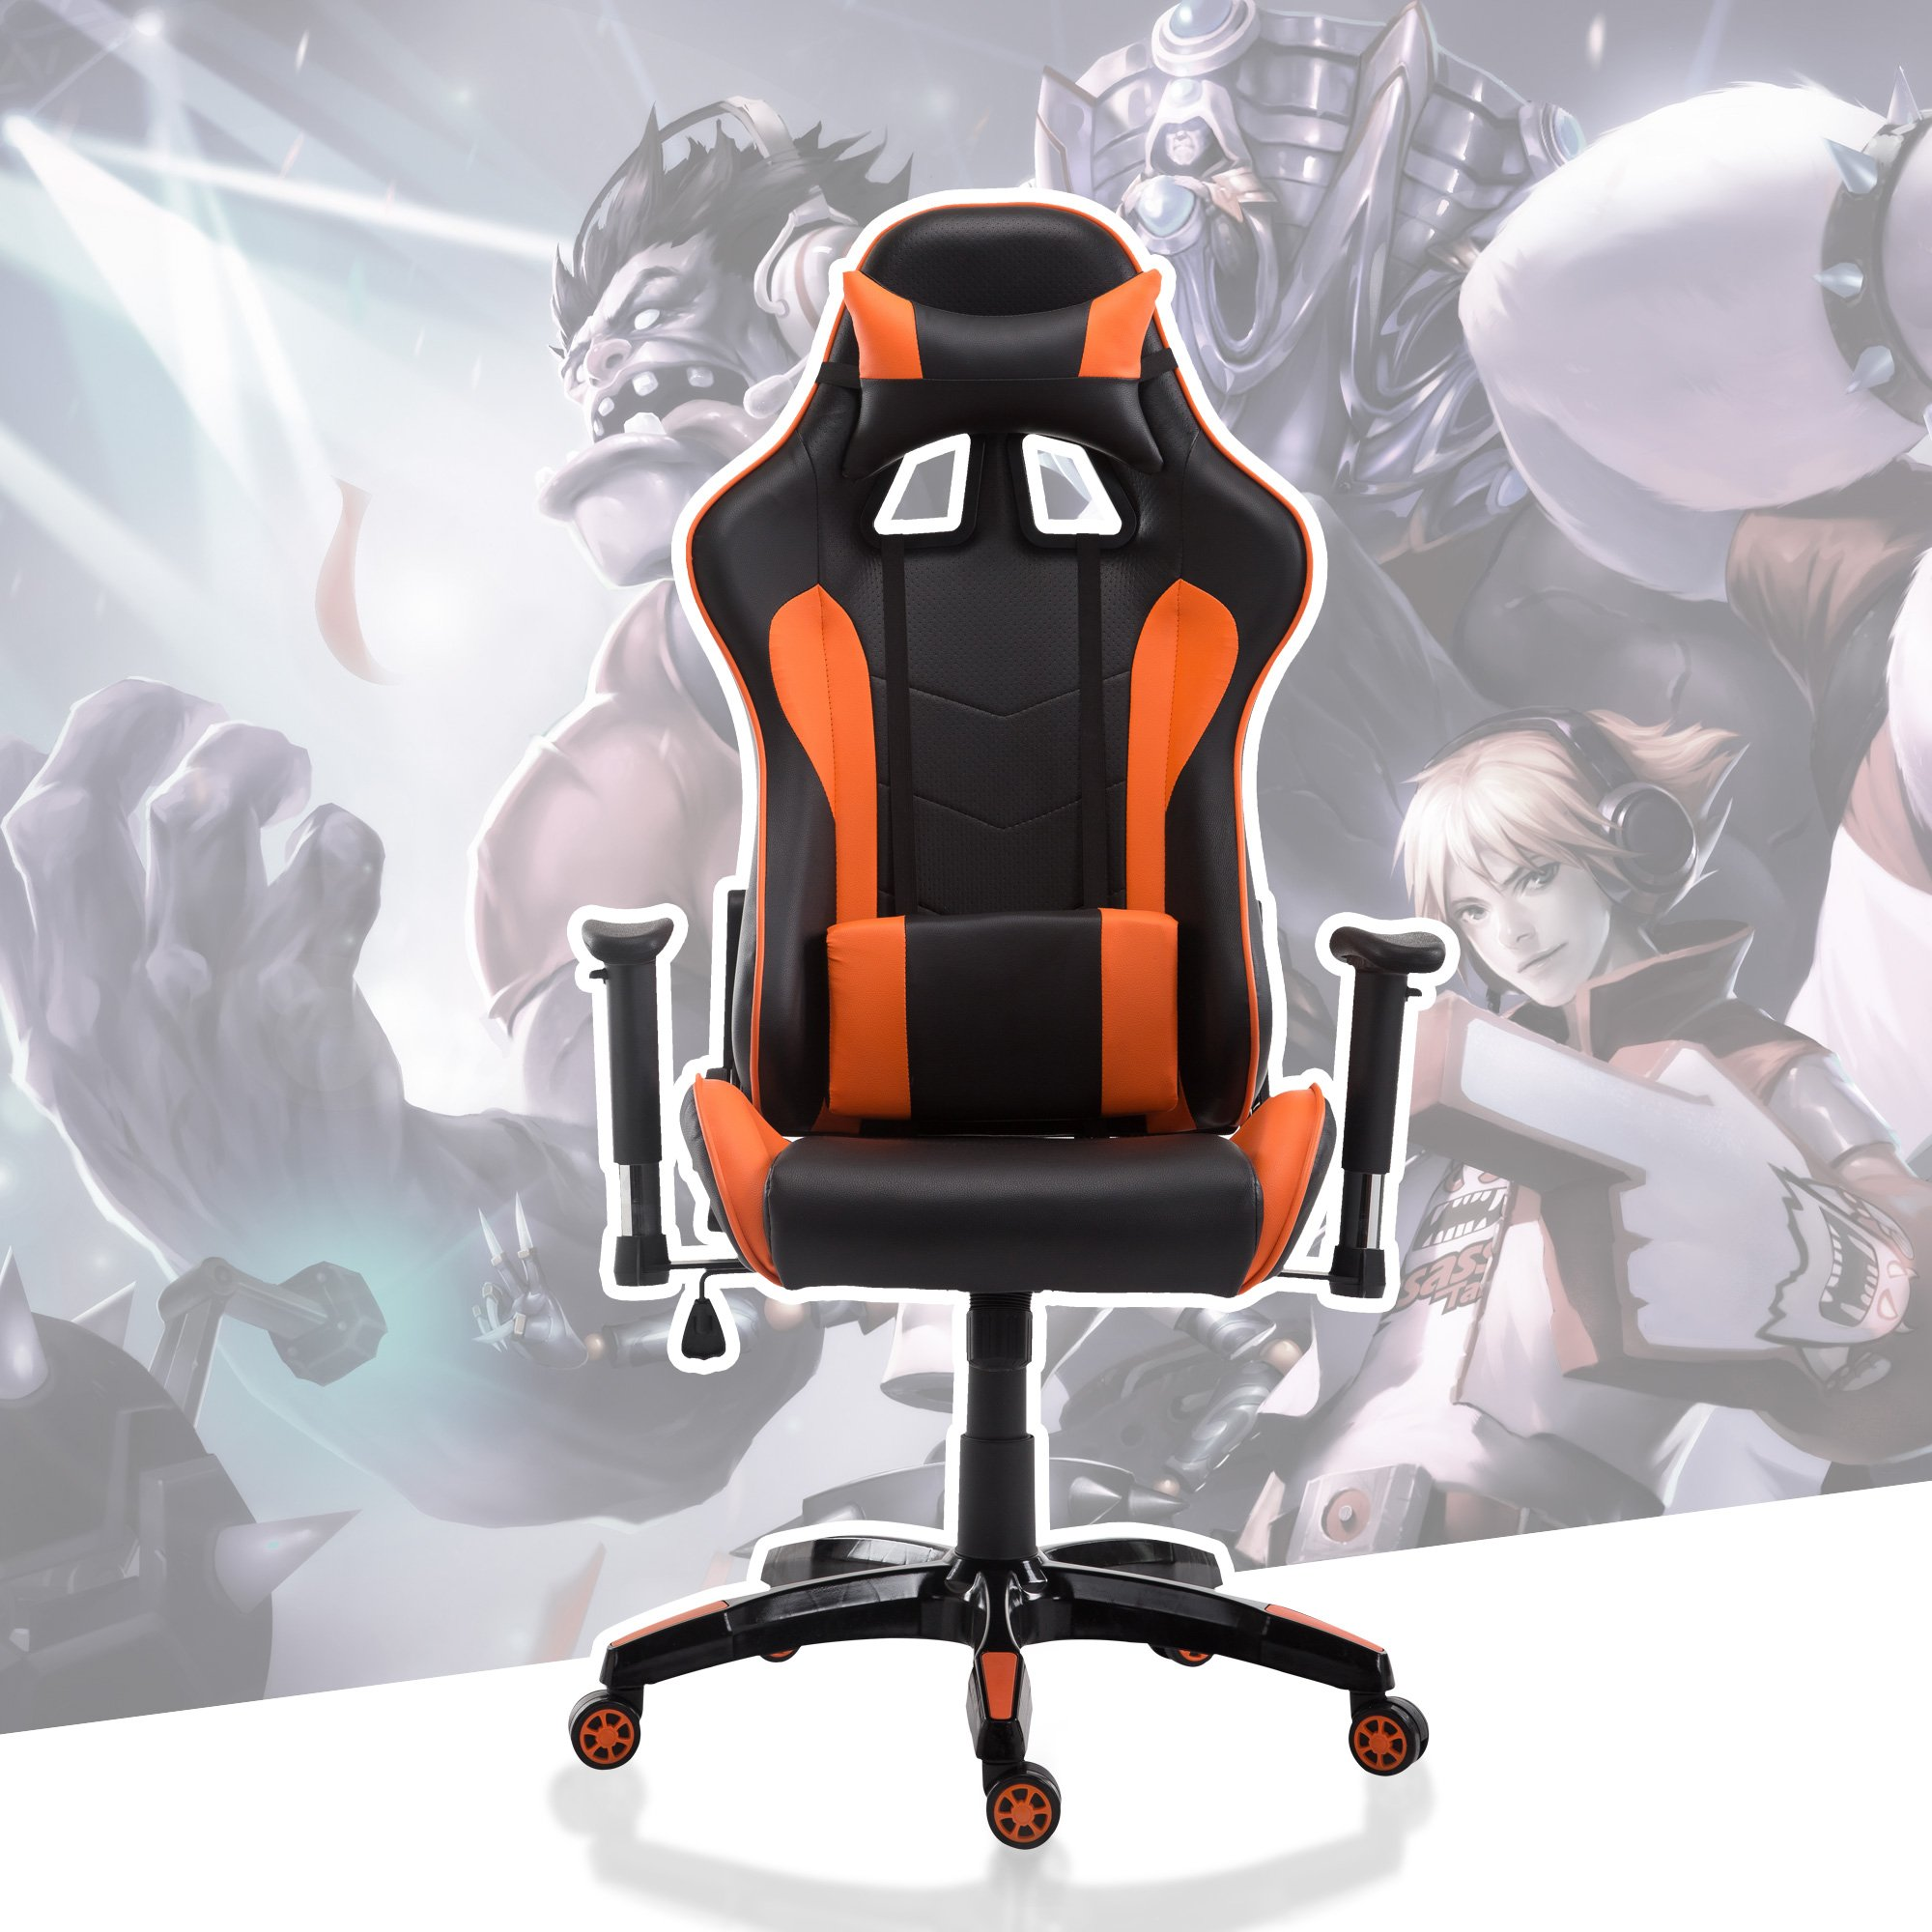 Cloud Mountain Gaming Chair Swivel Chair Racing Chair Ergonomic High Back Computer Desk Chair with Headrest and Lumbar Support Pillow, Black Orange